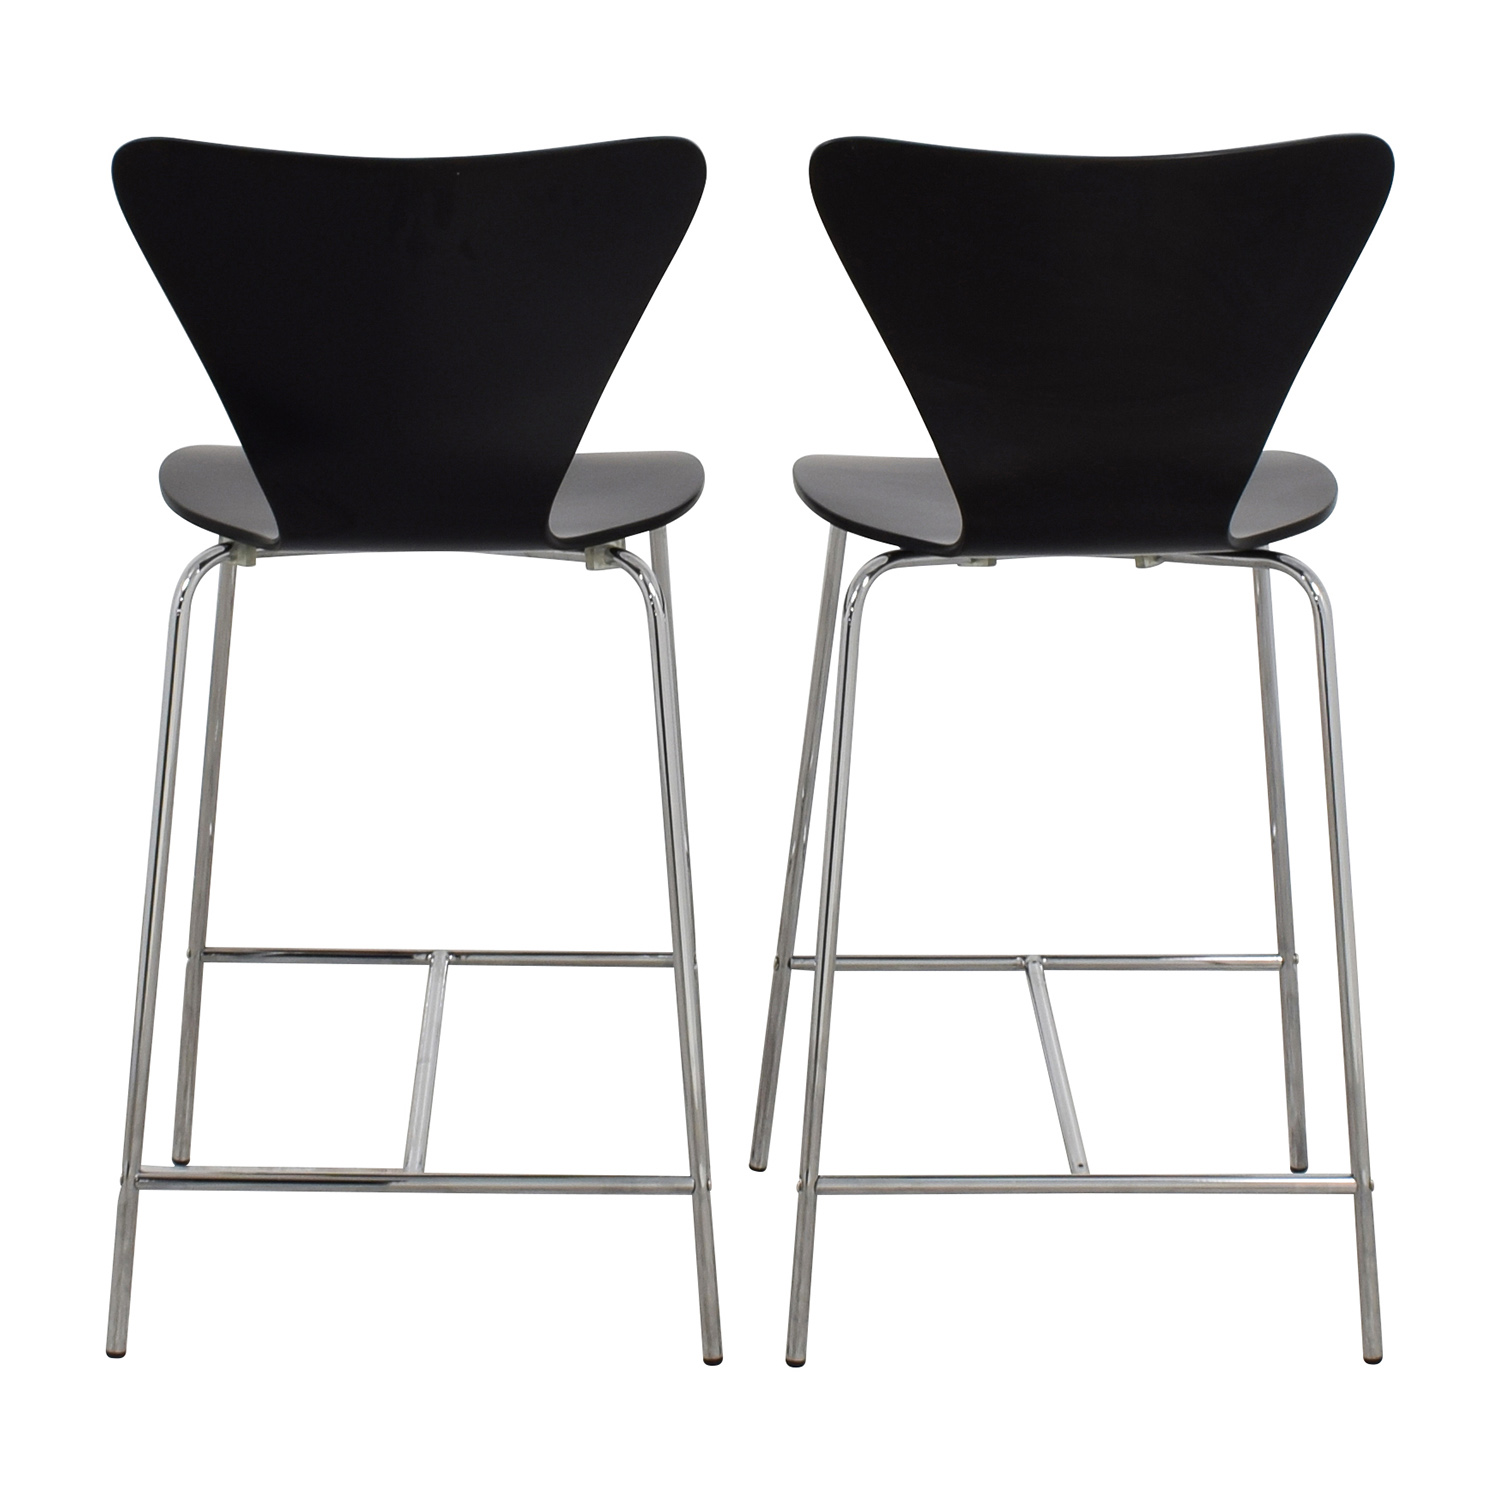 InMod InMod Tendy-C Counter Chair Black used